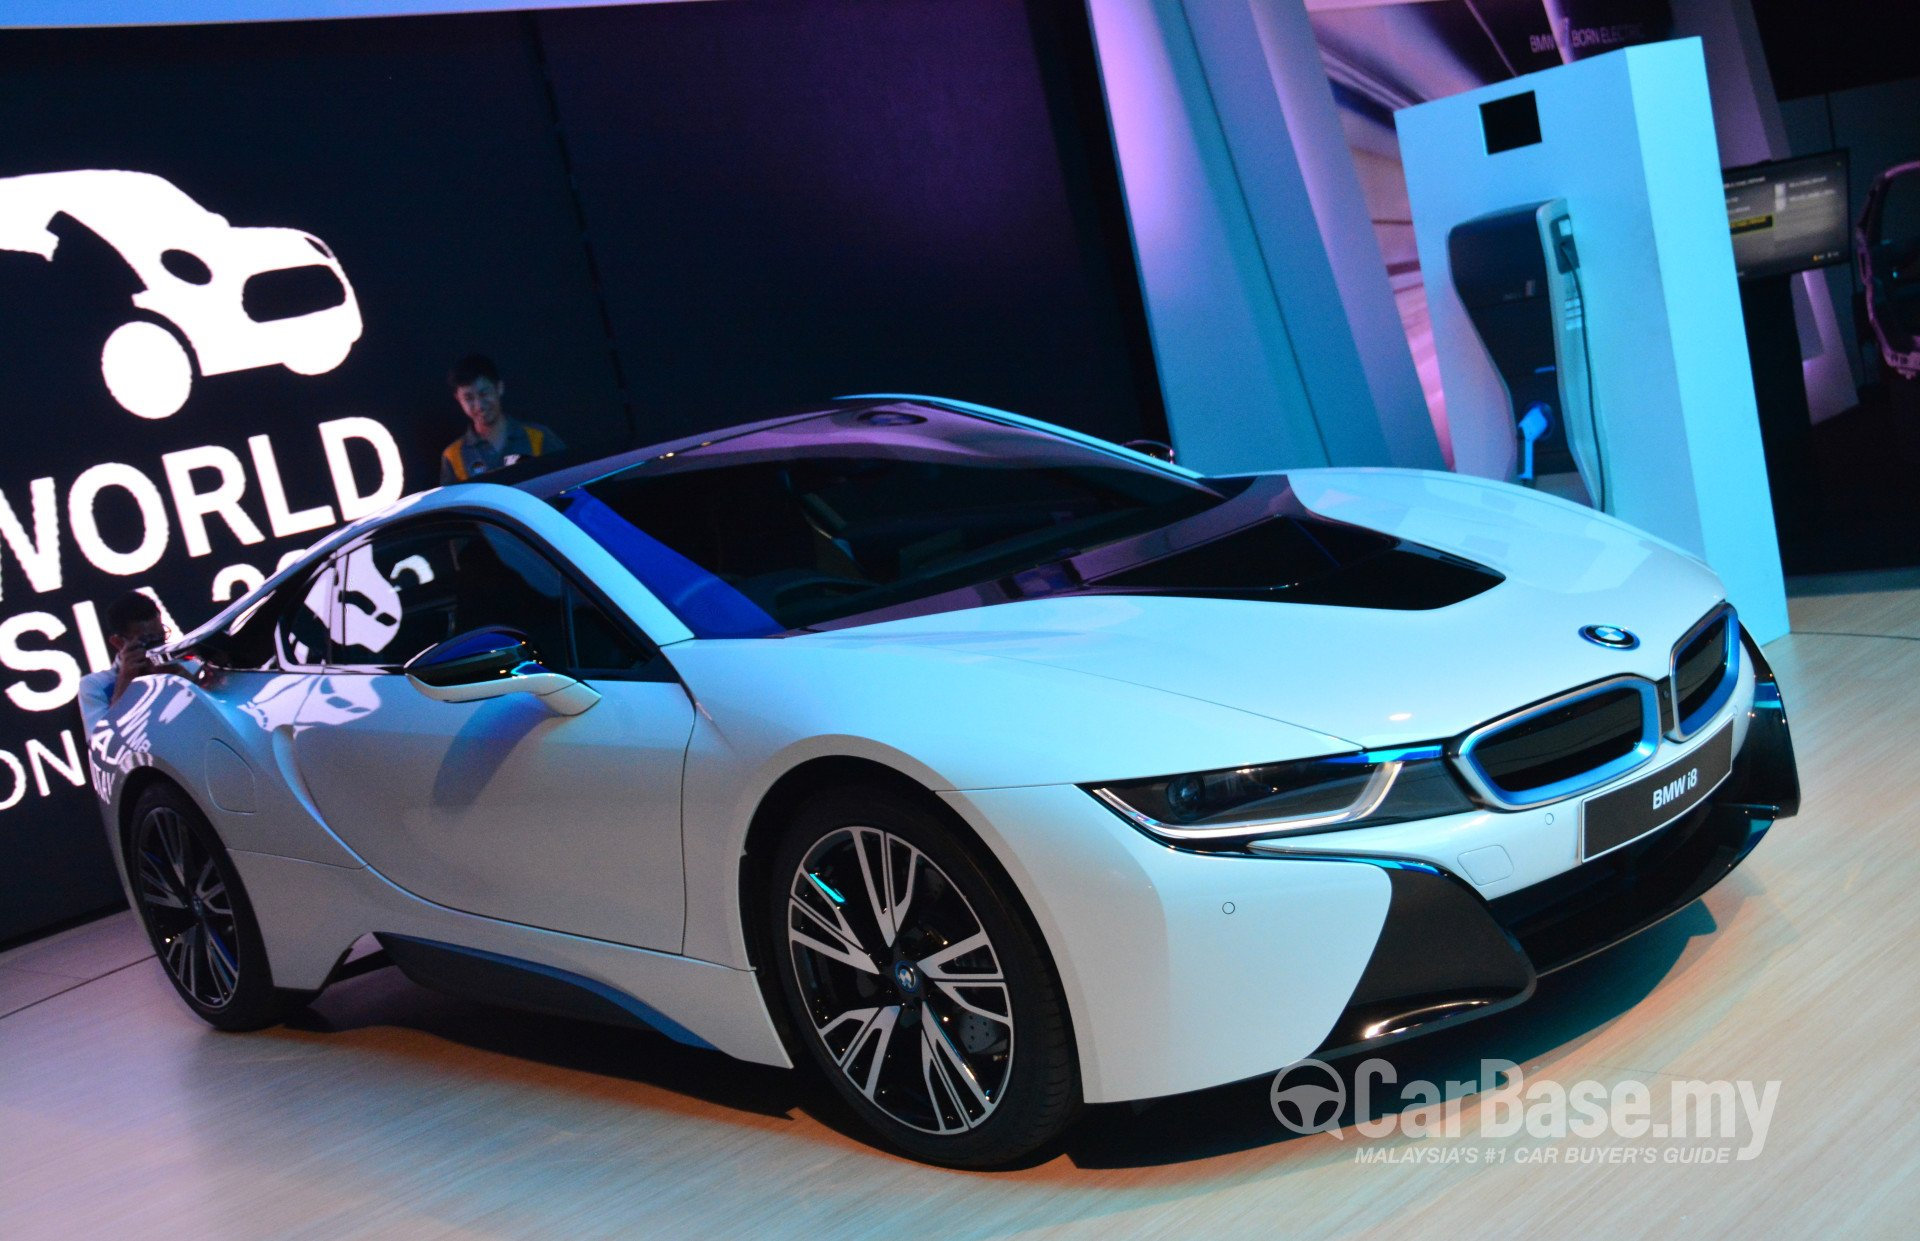 Bmw I8 Coupe I12 2015 Exterior Image In Malaysia Reviews Specs